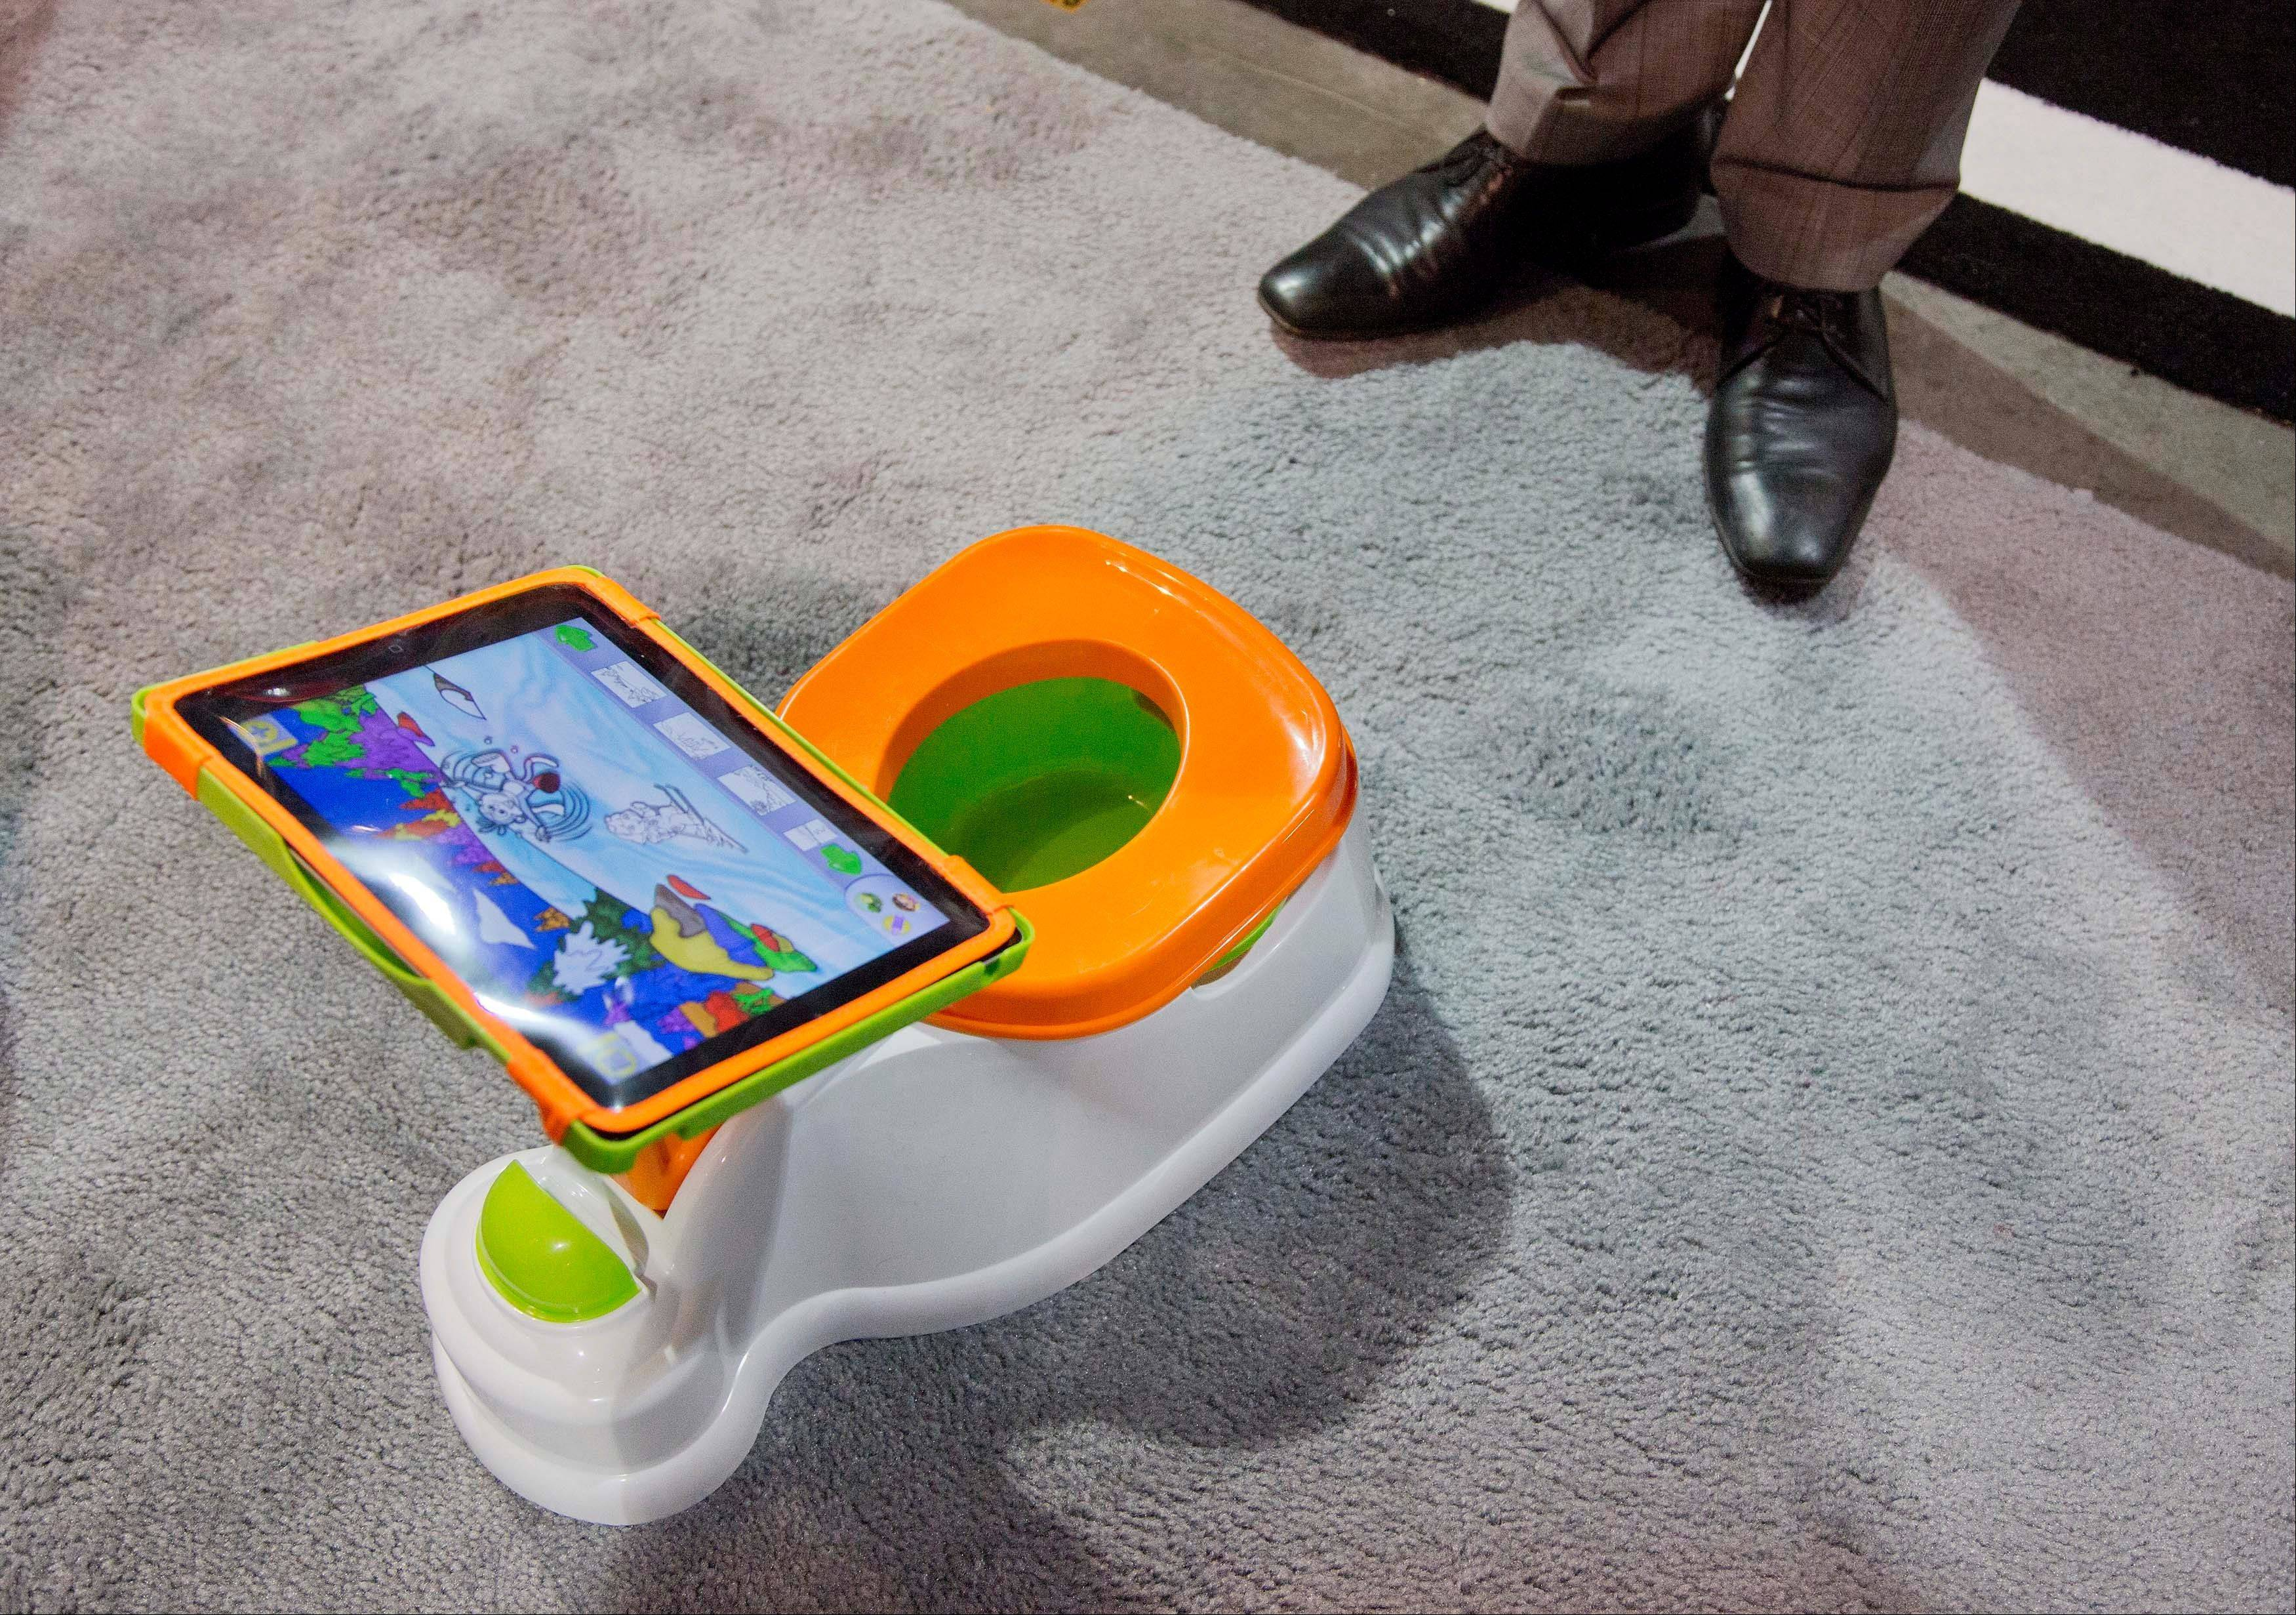 The iPotty for iPad potty training device is see on display at the Consumer Electronics Show in Las Vegas.